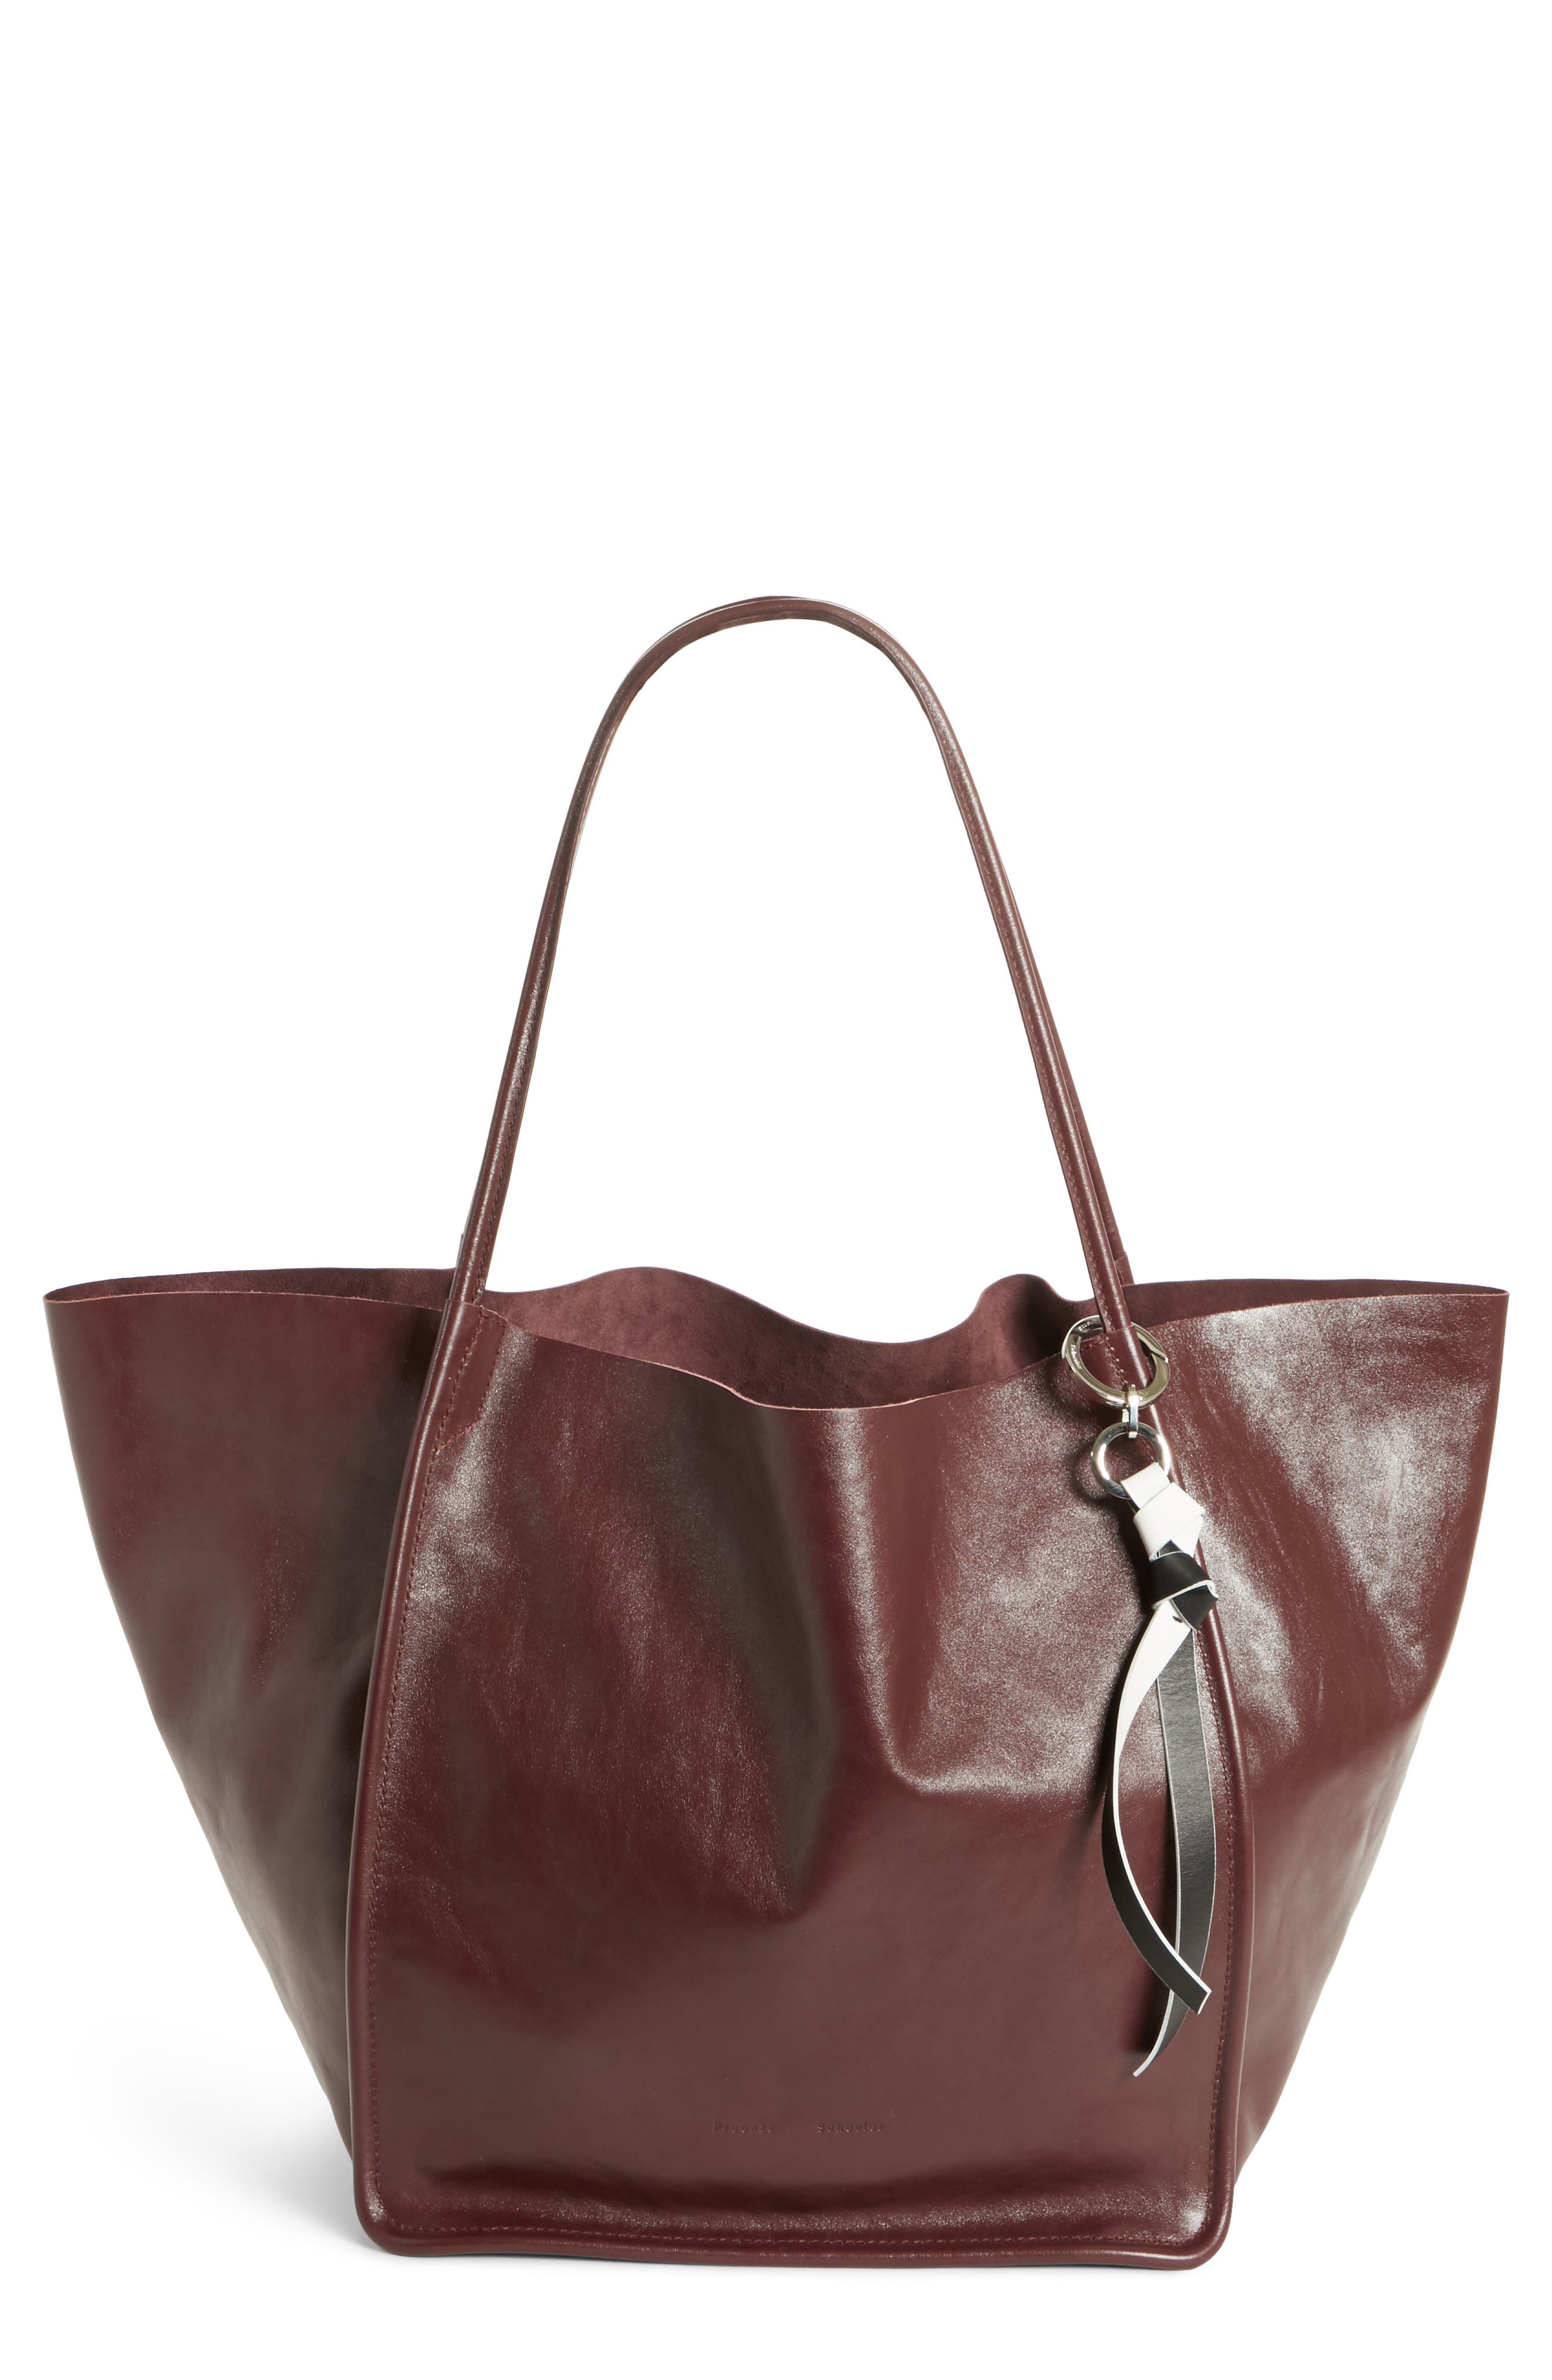 PROENZA SCHOULER, Extra Large Leather Tote, Main thumbnail 1, color, 848